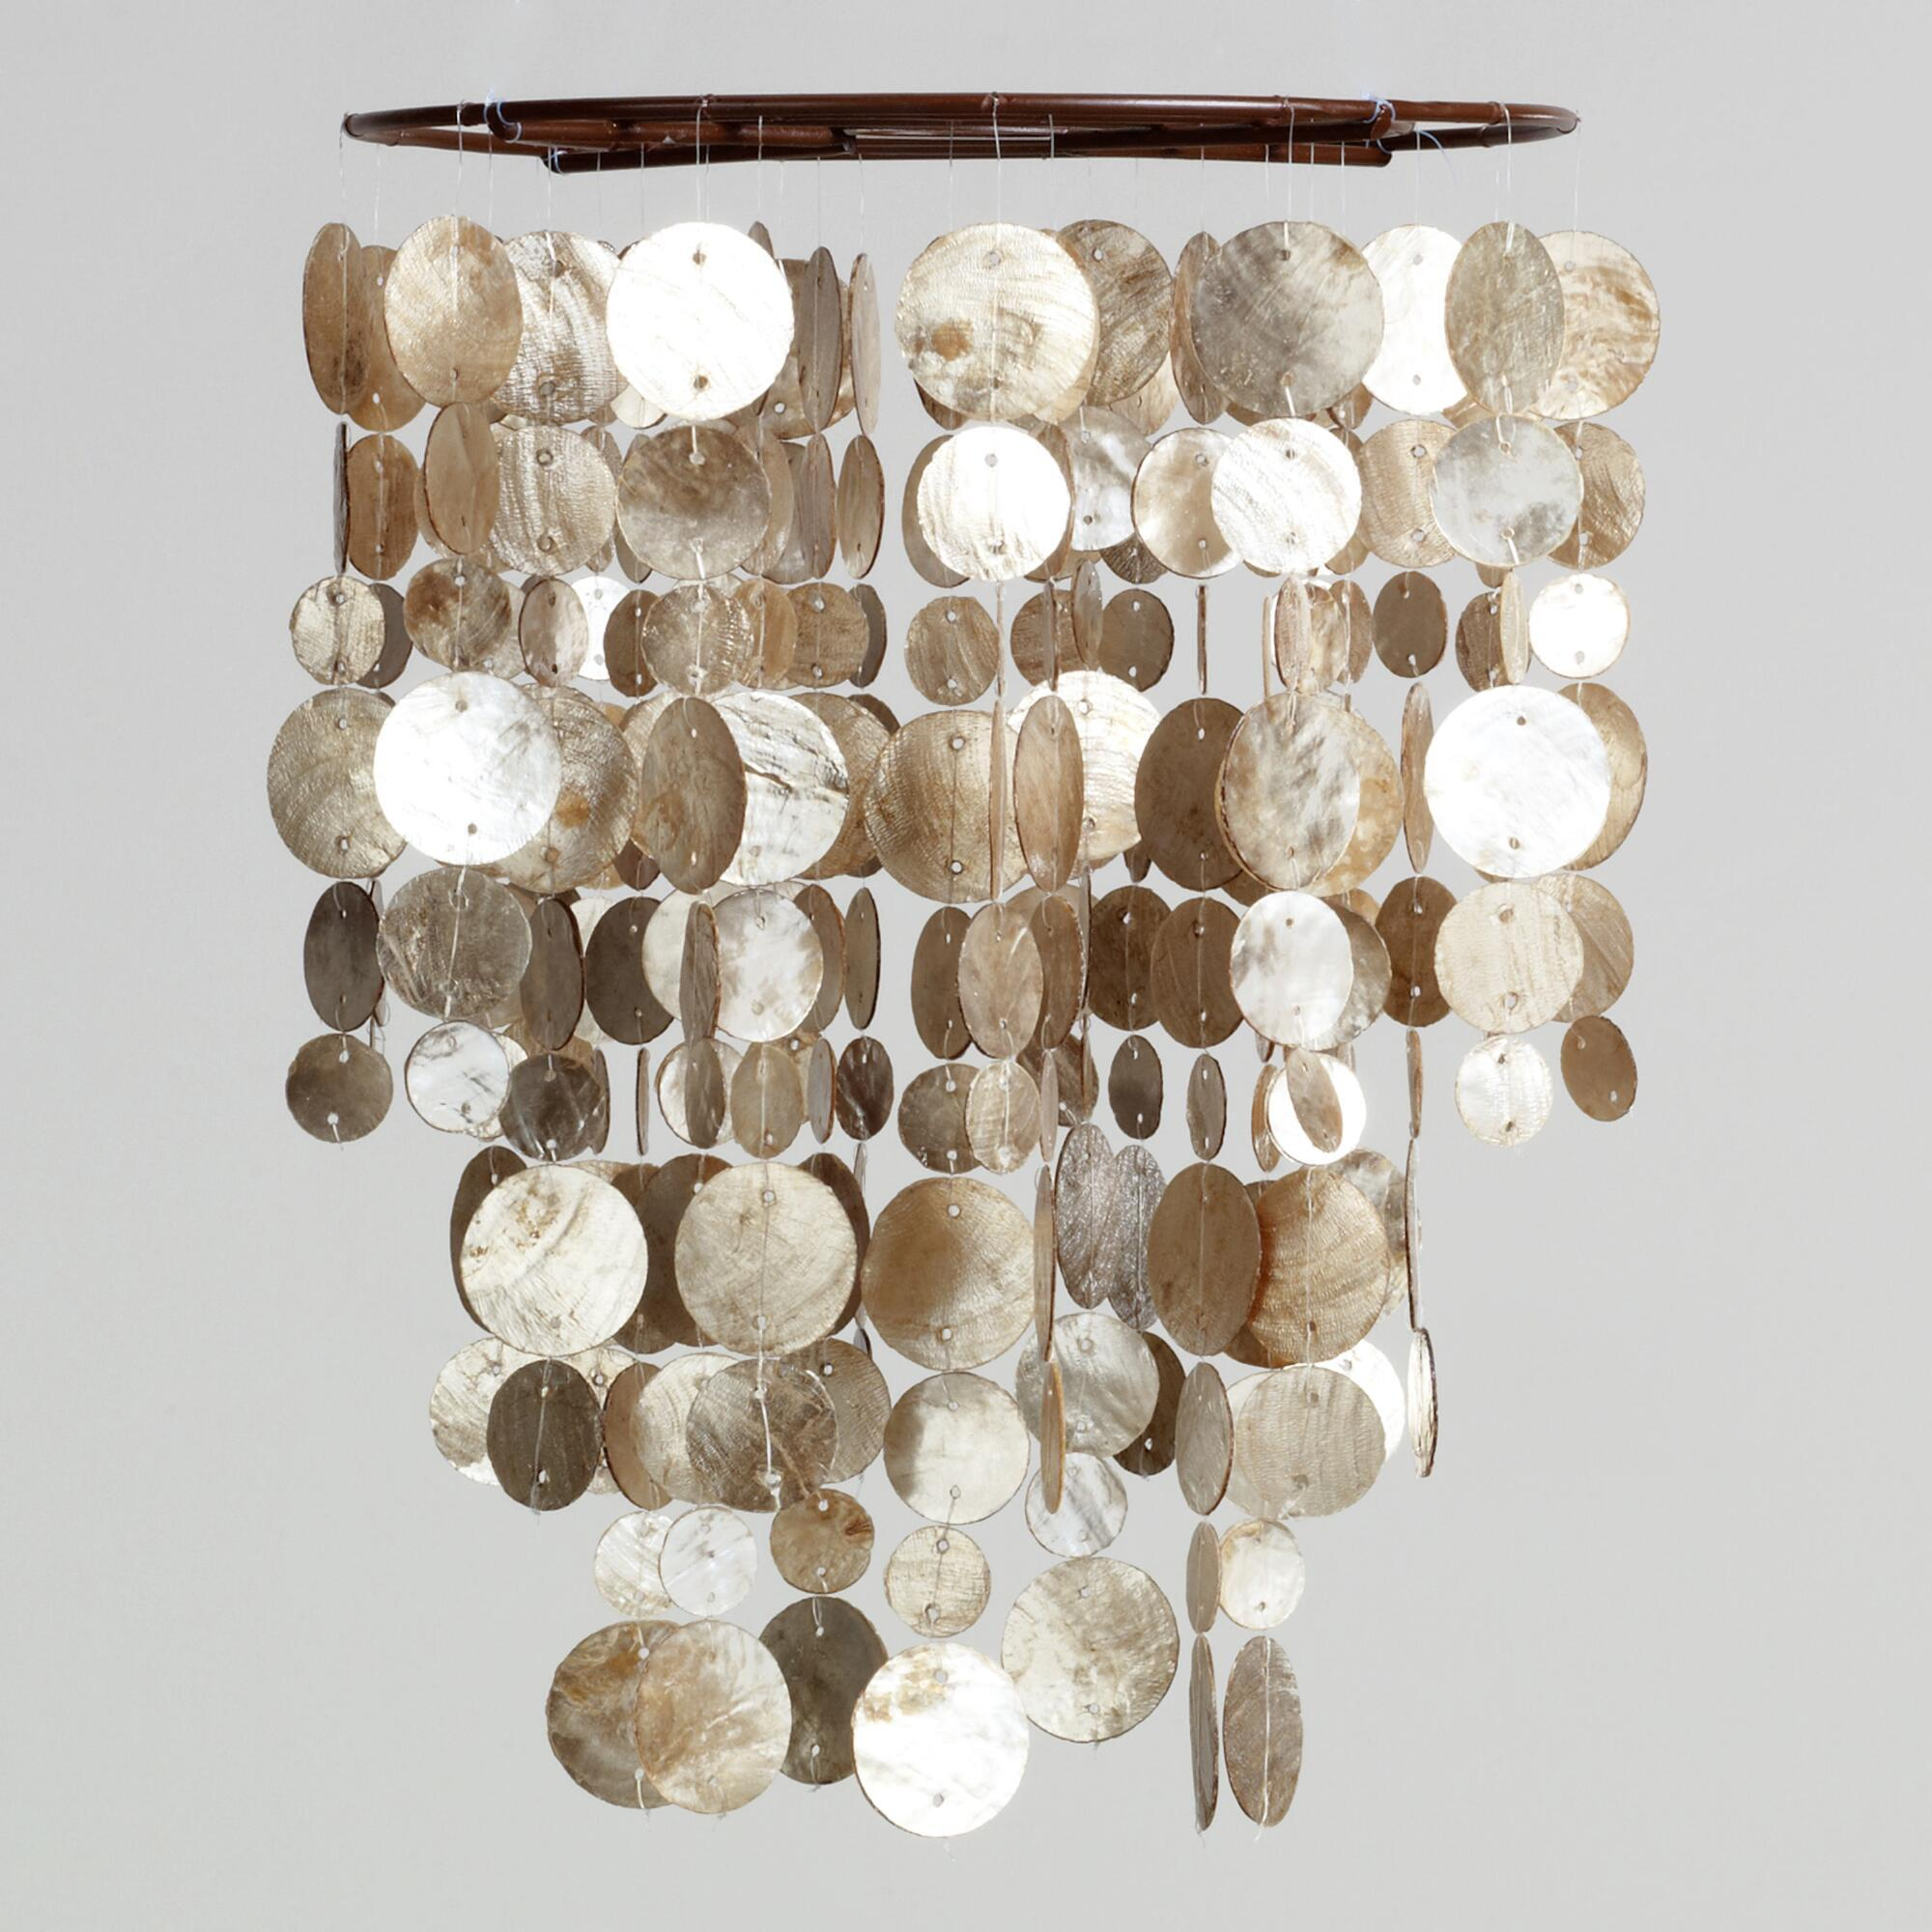 Appealing capiz shells wall mirror gold with light capiz shells for your home lighting ideas